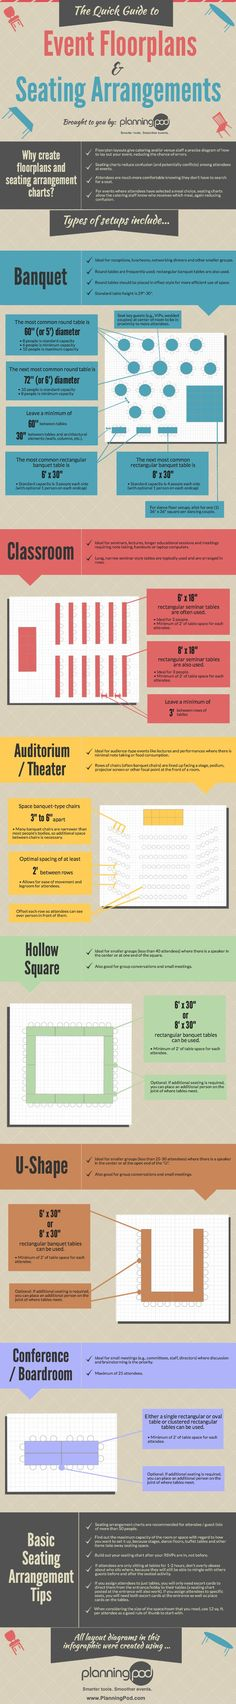 Get an at-a-glance look at the basics of creating an event floor plan / seating arrangement / table layout with this helpful infographic. http://blog.planningpod.com/2014/02/04/quick-guide-event-floorplans-seating-arrangements-infographic/